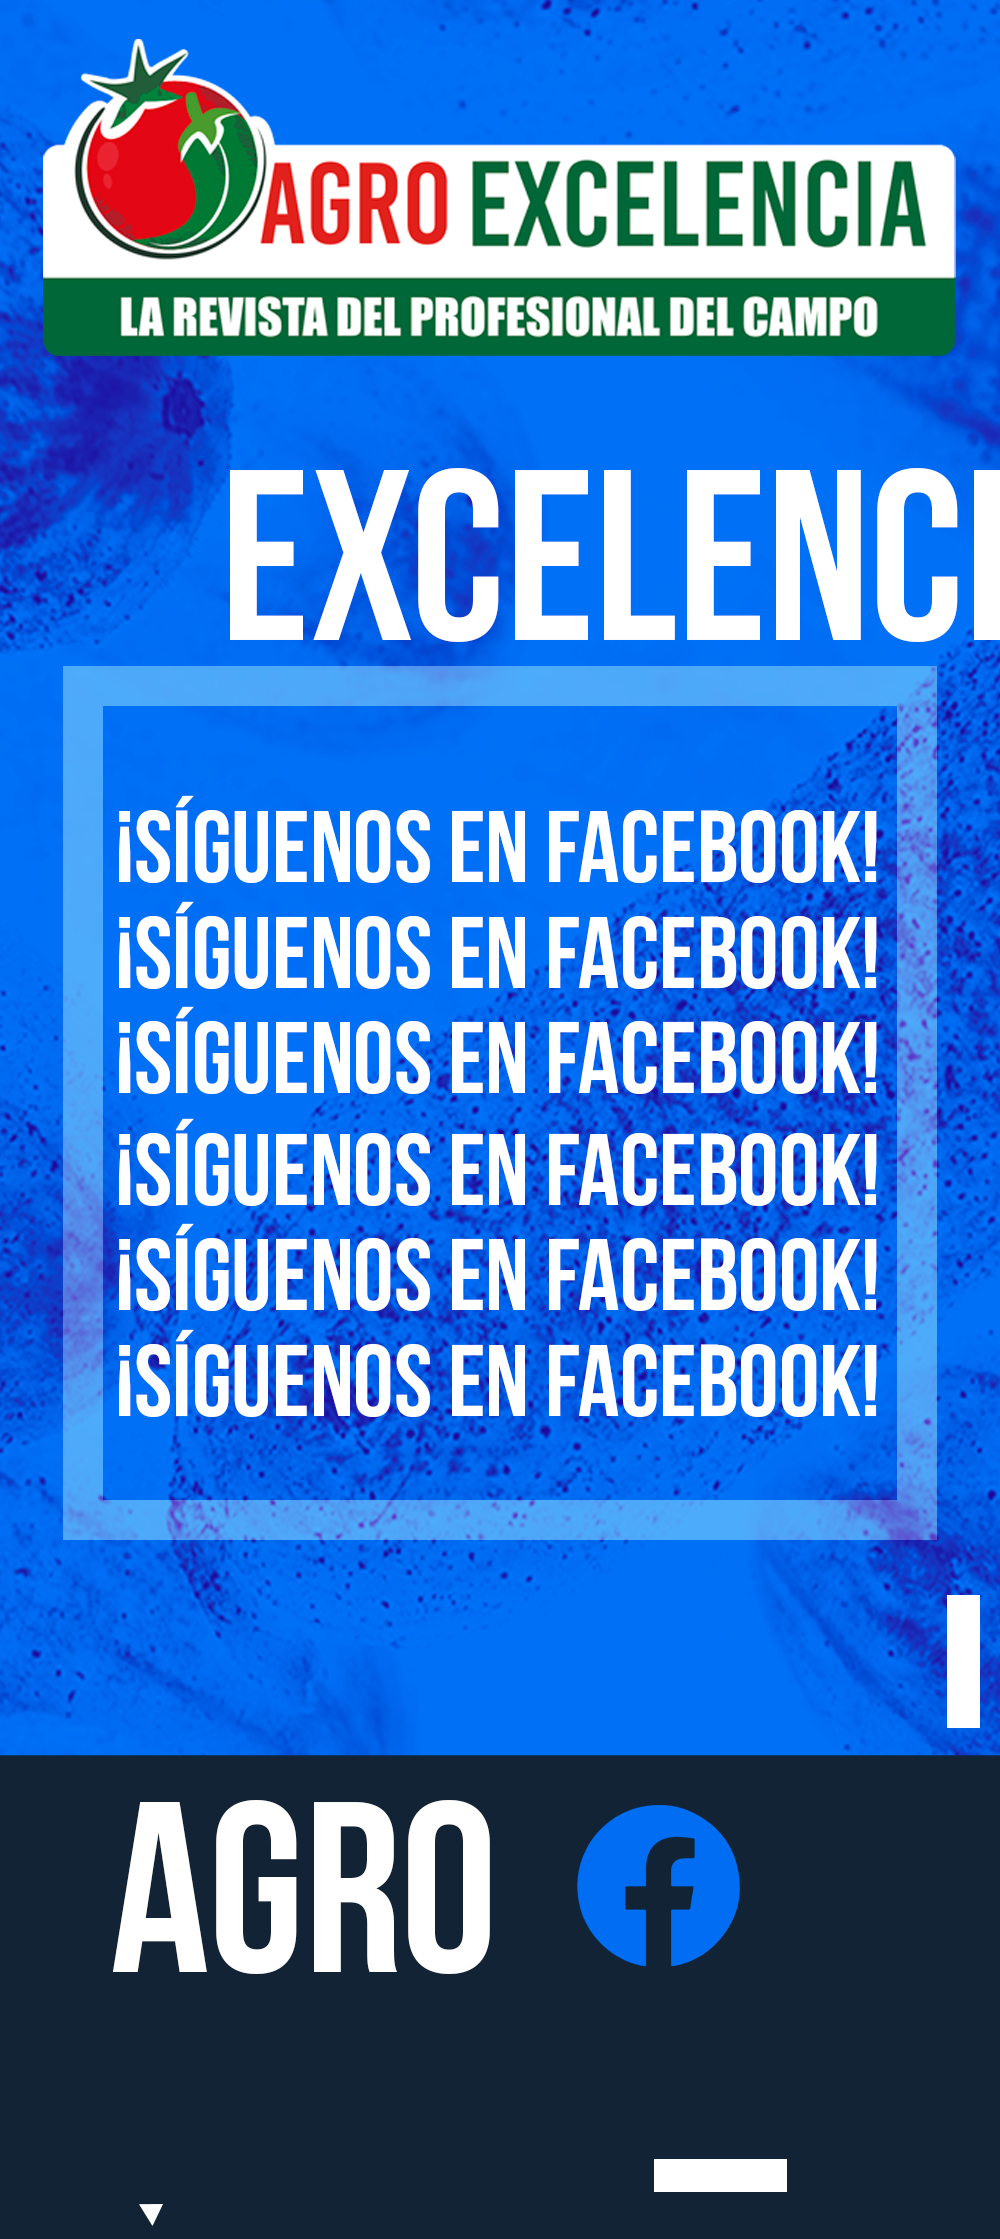 https://agroexcelencia.com/wp-content/uploads/2020/04/POST-14.png